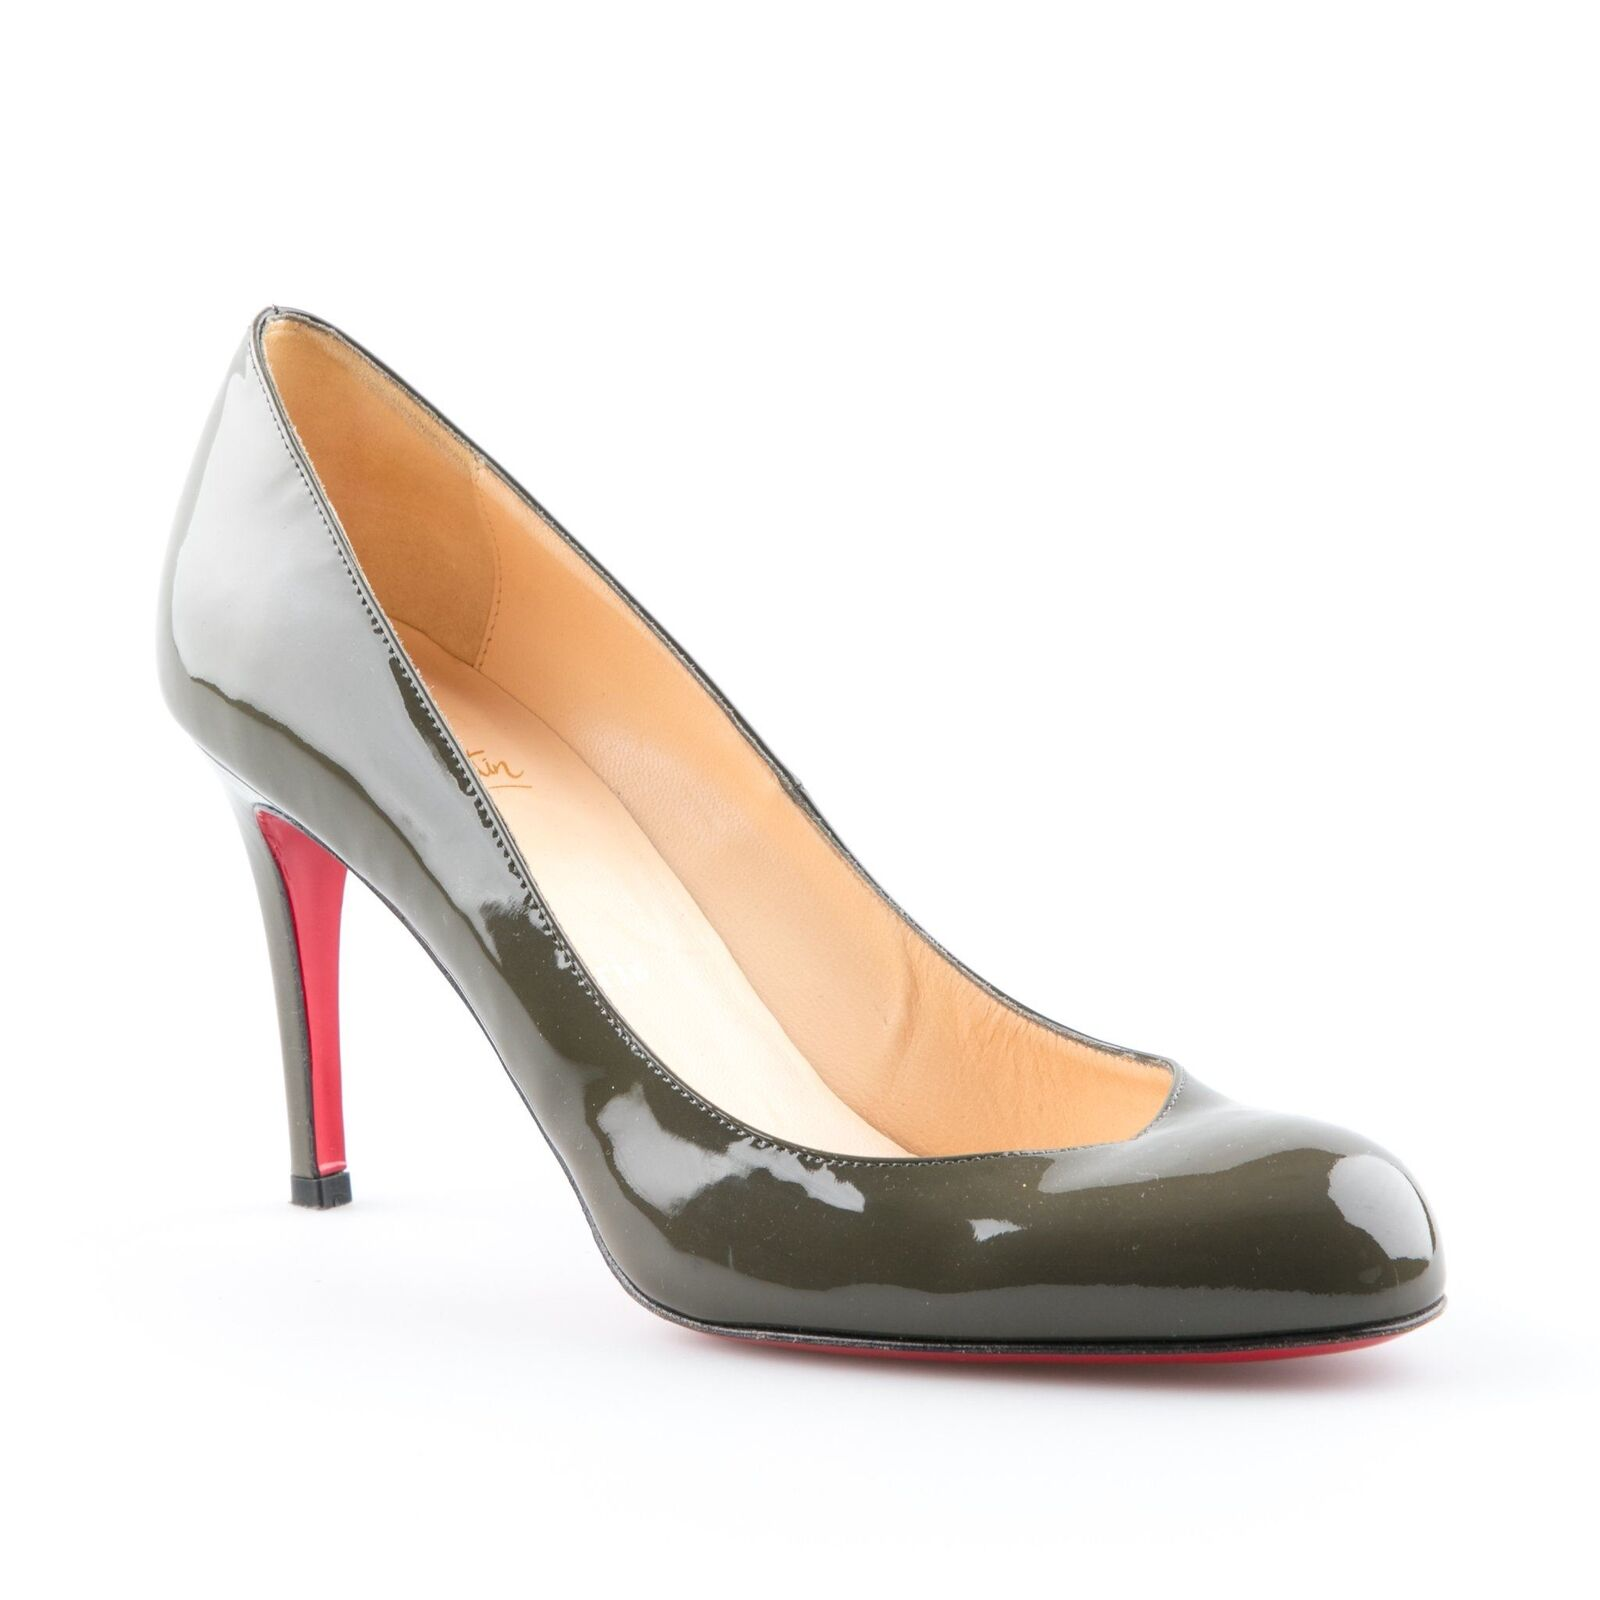 Christian Louboutin Olive verde Patent Leather Simple Pump 85mm